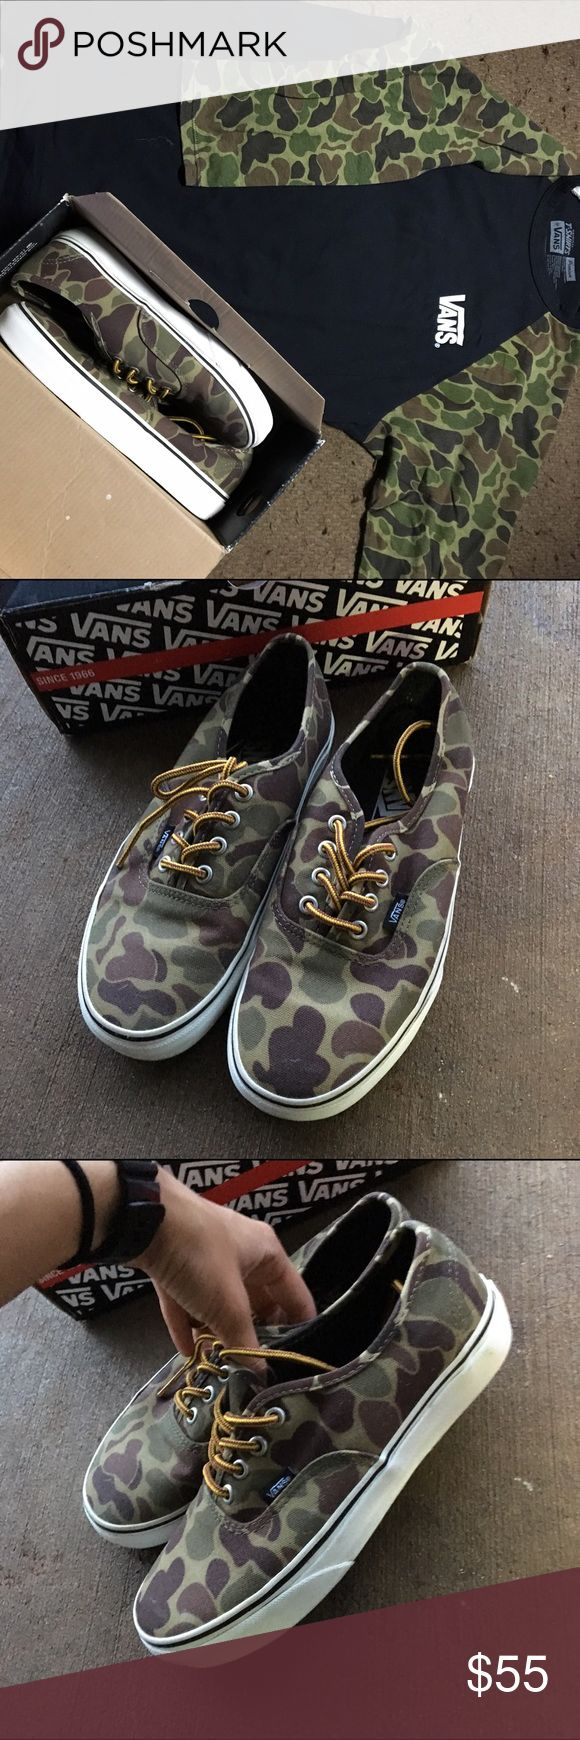 """Camo Vans & Matching Shirt """"Marshmallow Camo Vans"""" Used a couple times but still great condition. Comes with original box. Size 6.5Y / 8 Women. Also throwing in a Men's SMALL matching baseball tee. Shoes retail: $50, Shirt retail: $30-$35. (Cheaper through Mercari.. I will make an account if you are a serious buyer) OFFERS WILL BE CONSIDERED Vans Shoes Sneakers"""